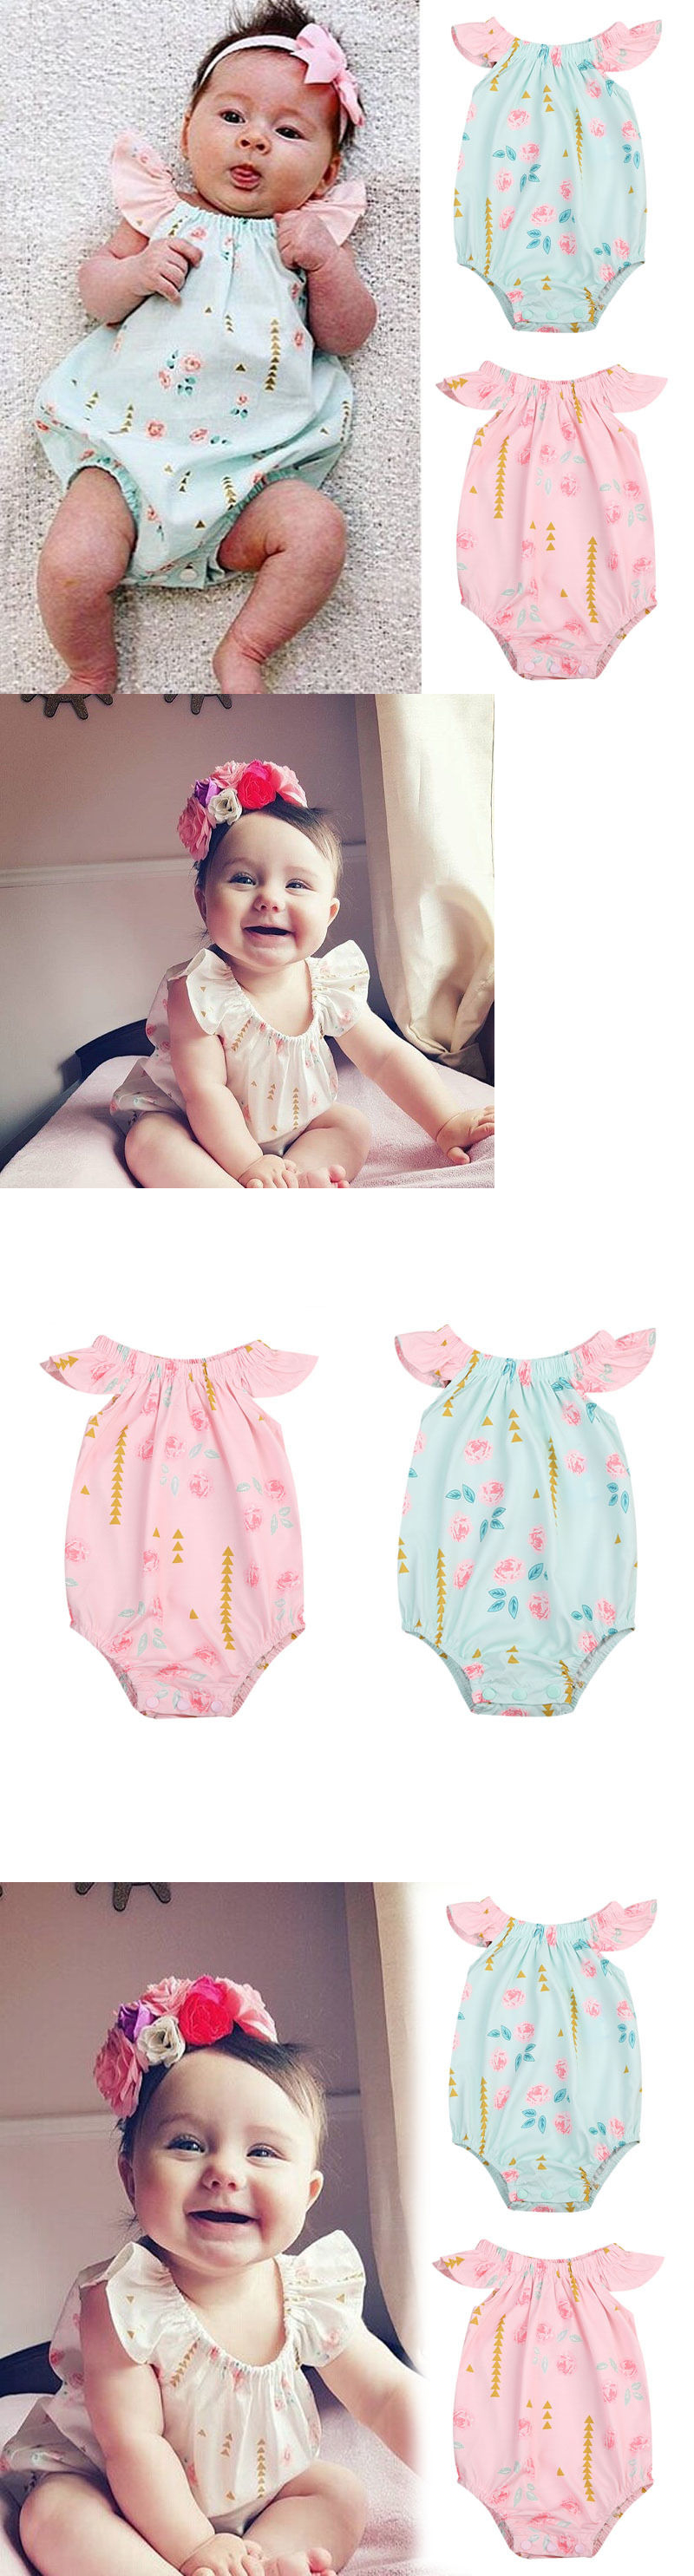 new cheap online retailer buying now Baby Girls Clothing: Us Stock Newborn Infant Baby Girl Floral ...